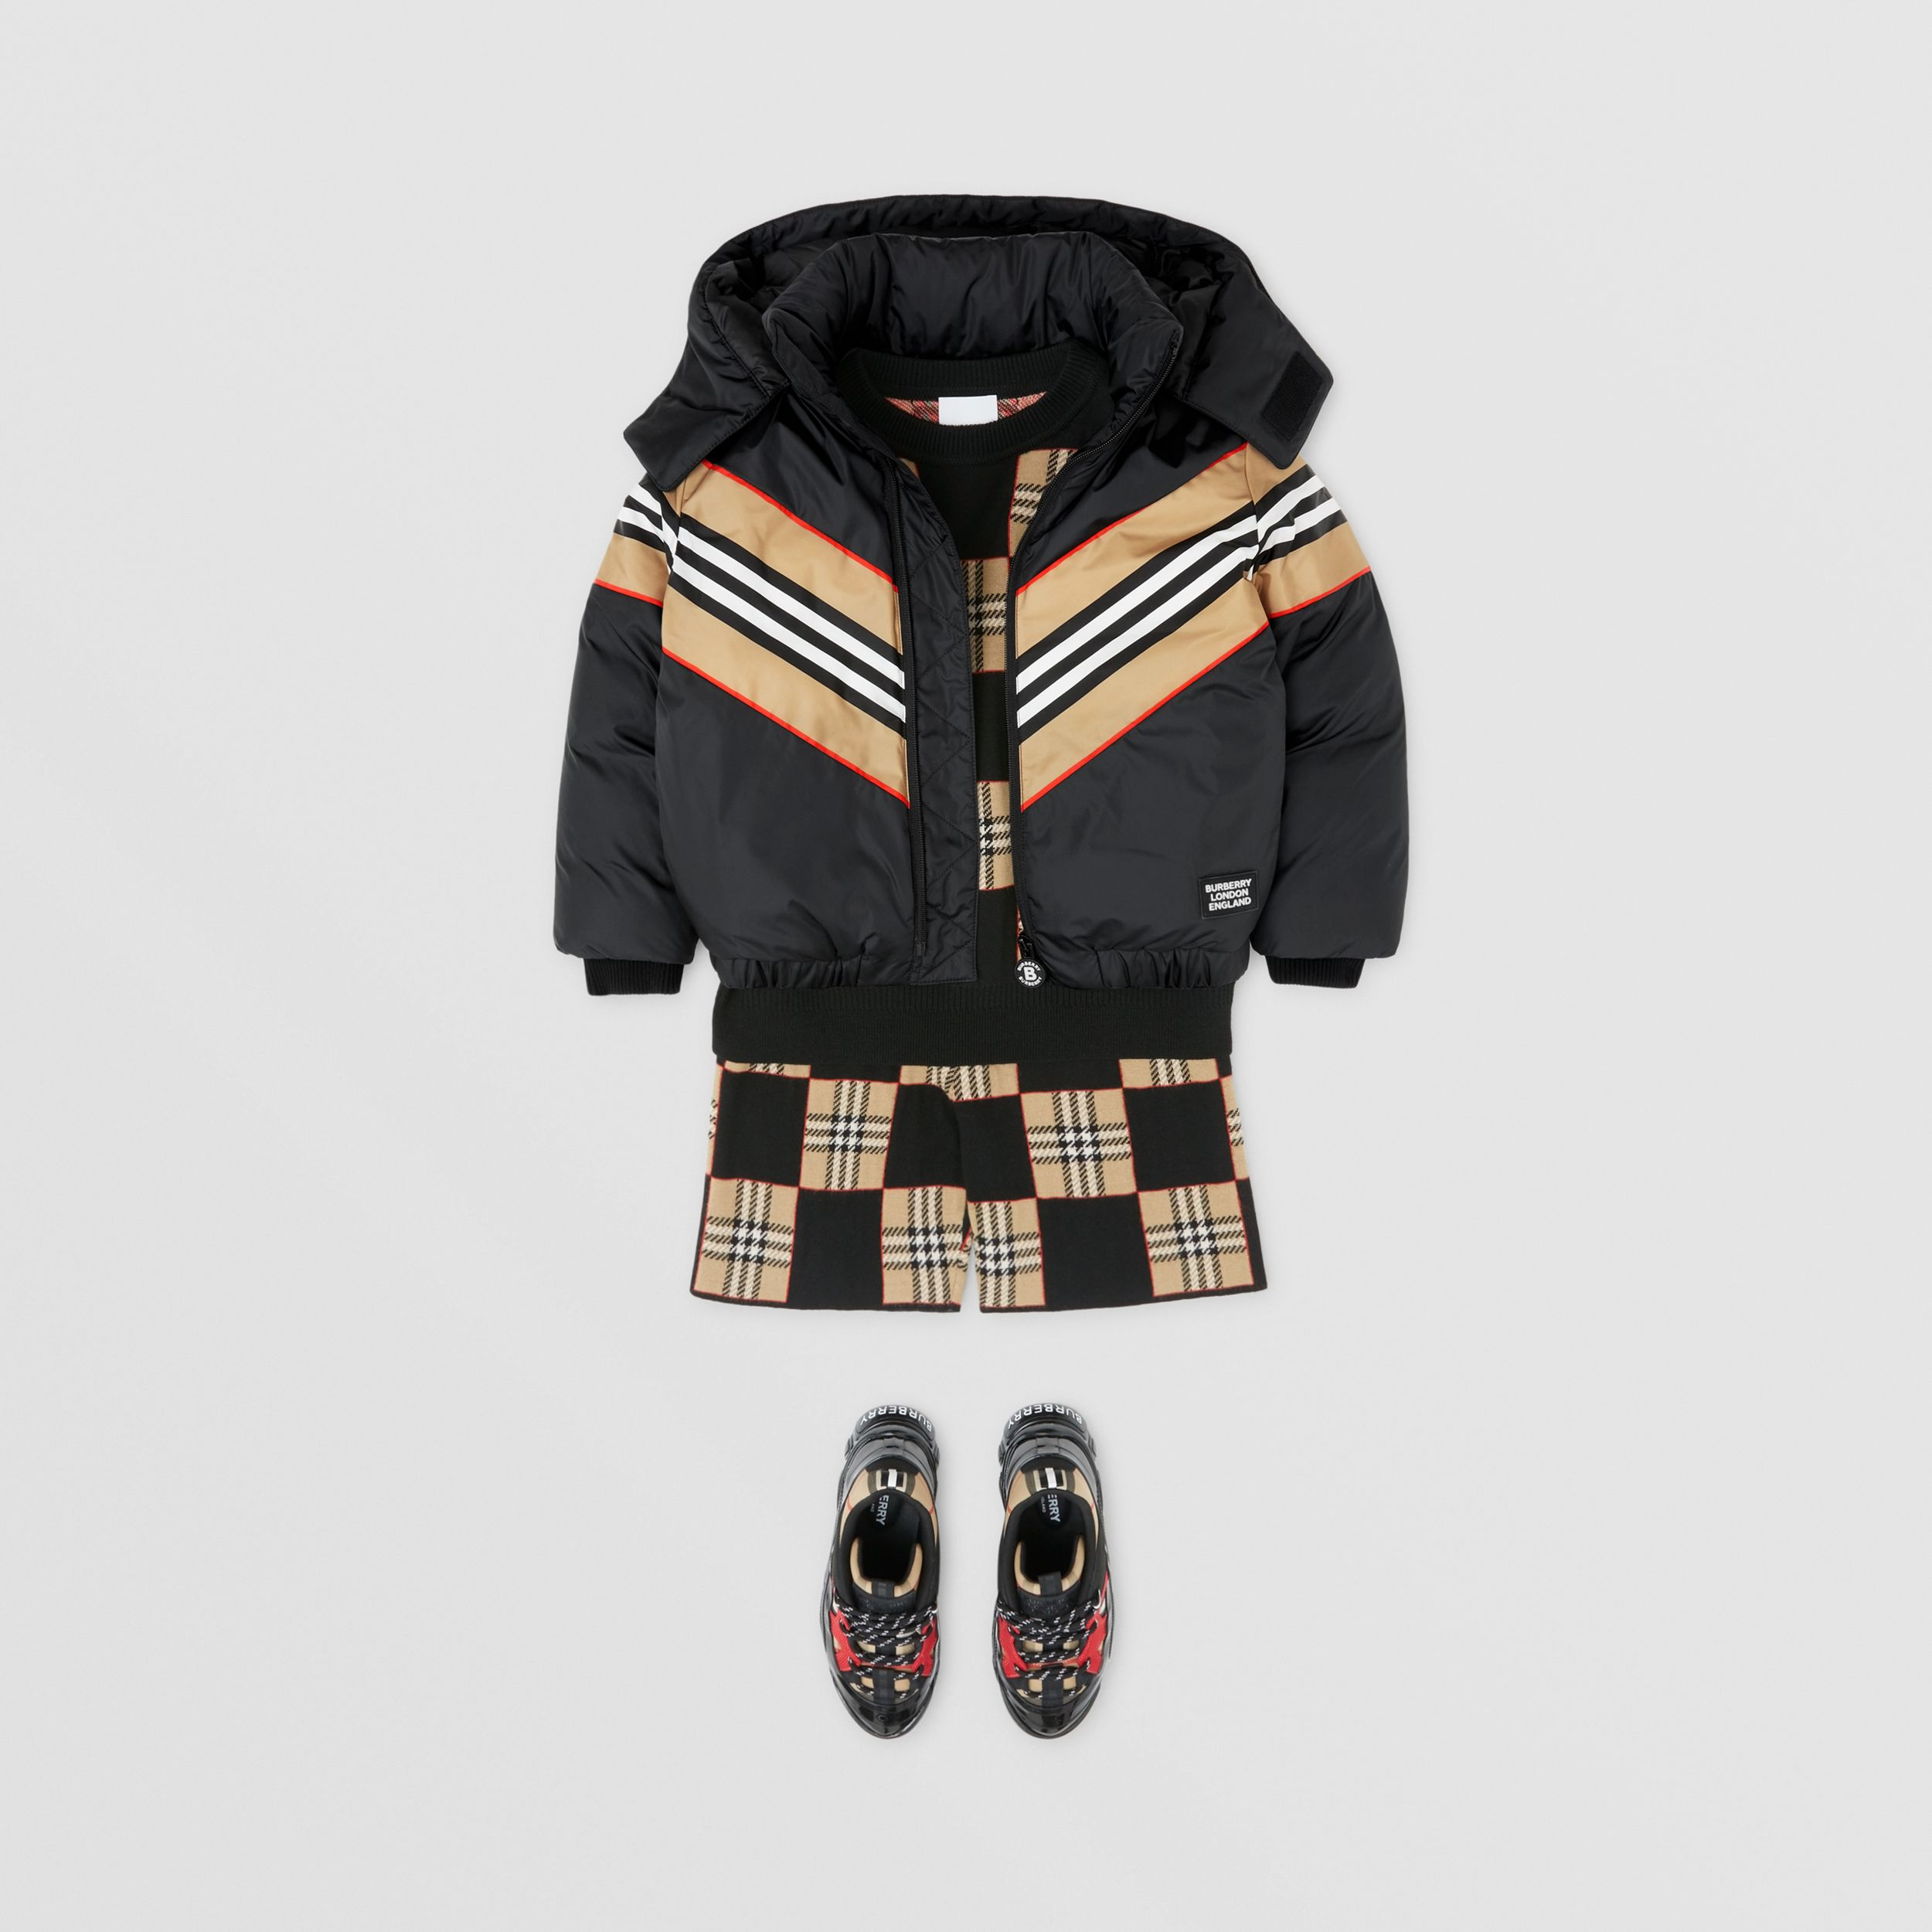 Logo Appliqué Icon Stripe Panel Down-filled Jacket in Black | Burberry - 3